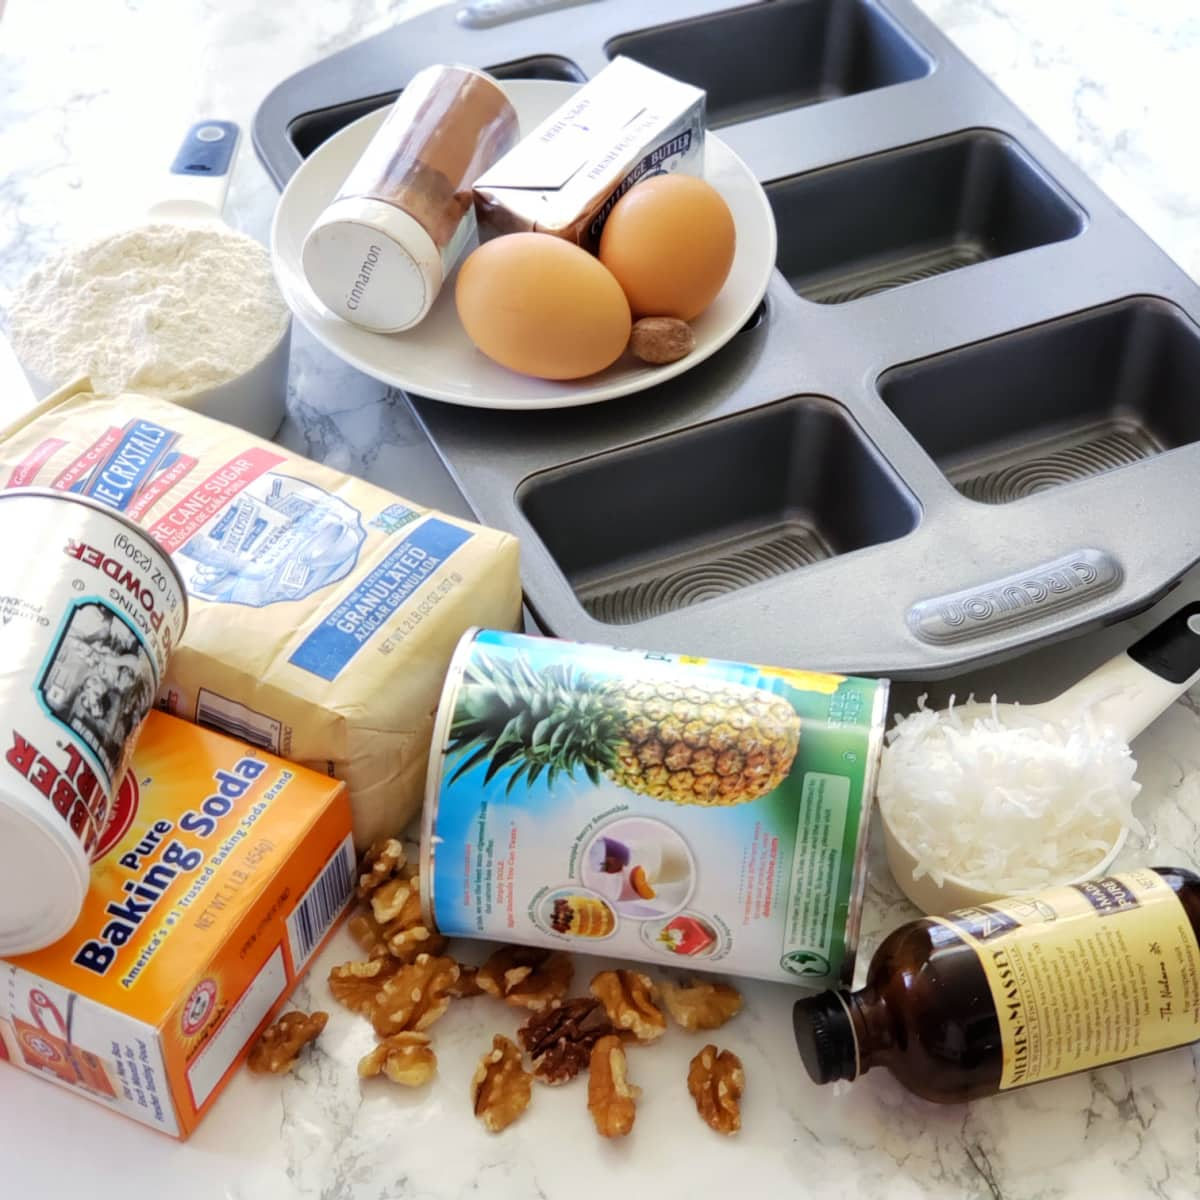 Ingredients for Pineapple Coconut Quick Bread on a white marble counter